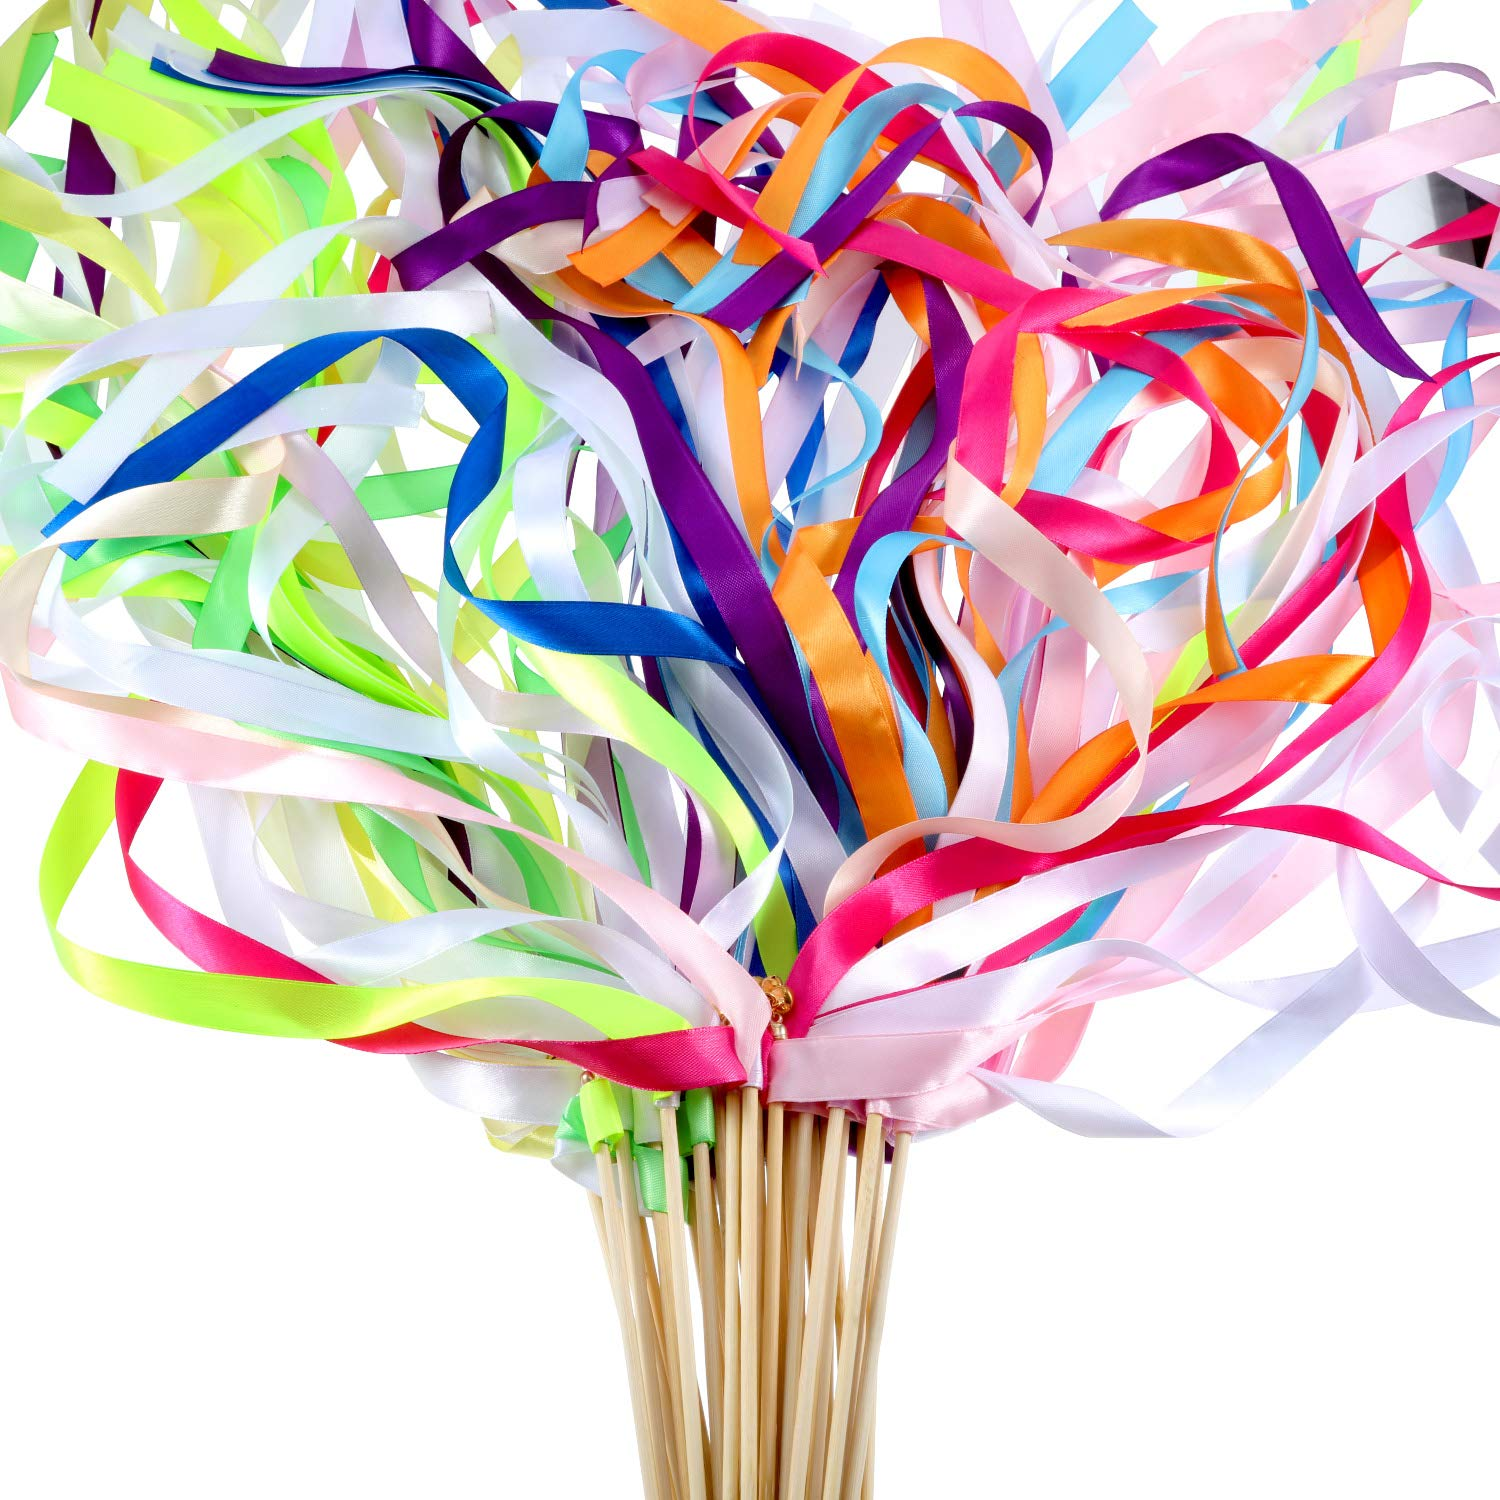 60 Pieces Mix Color Ribbon Wands Sticks with Bell Fairy Stick Party Streamers for Wedding Party by Boao